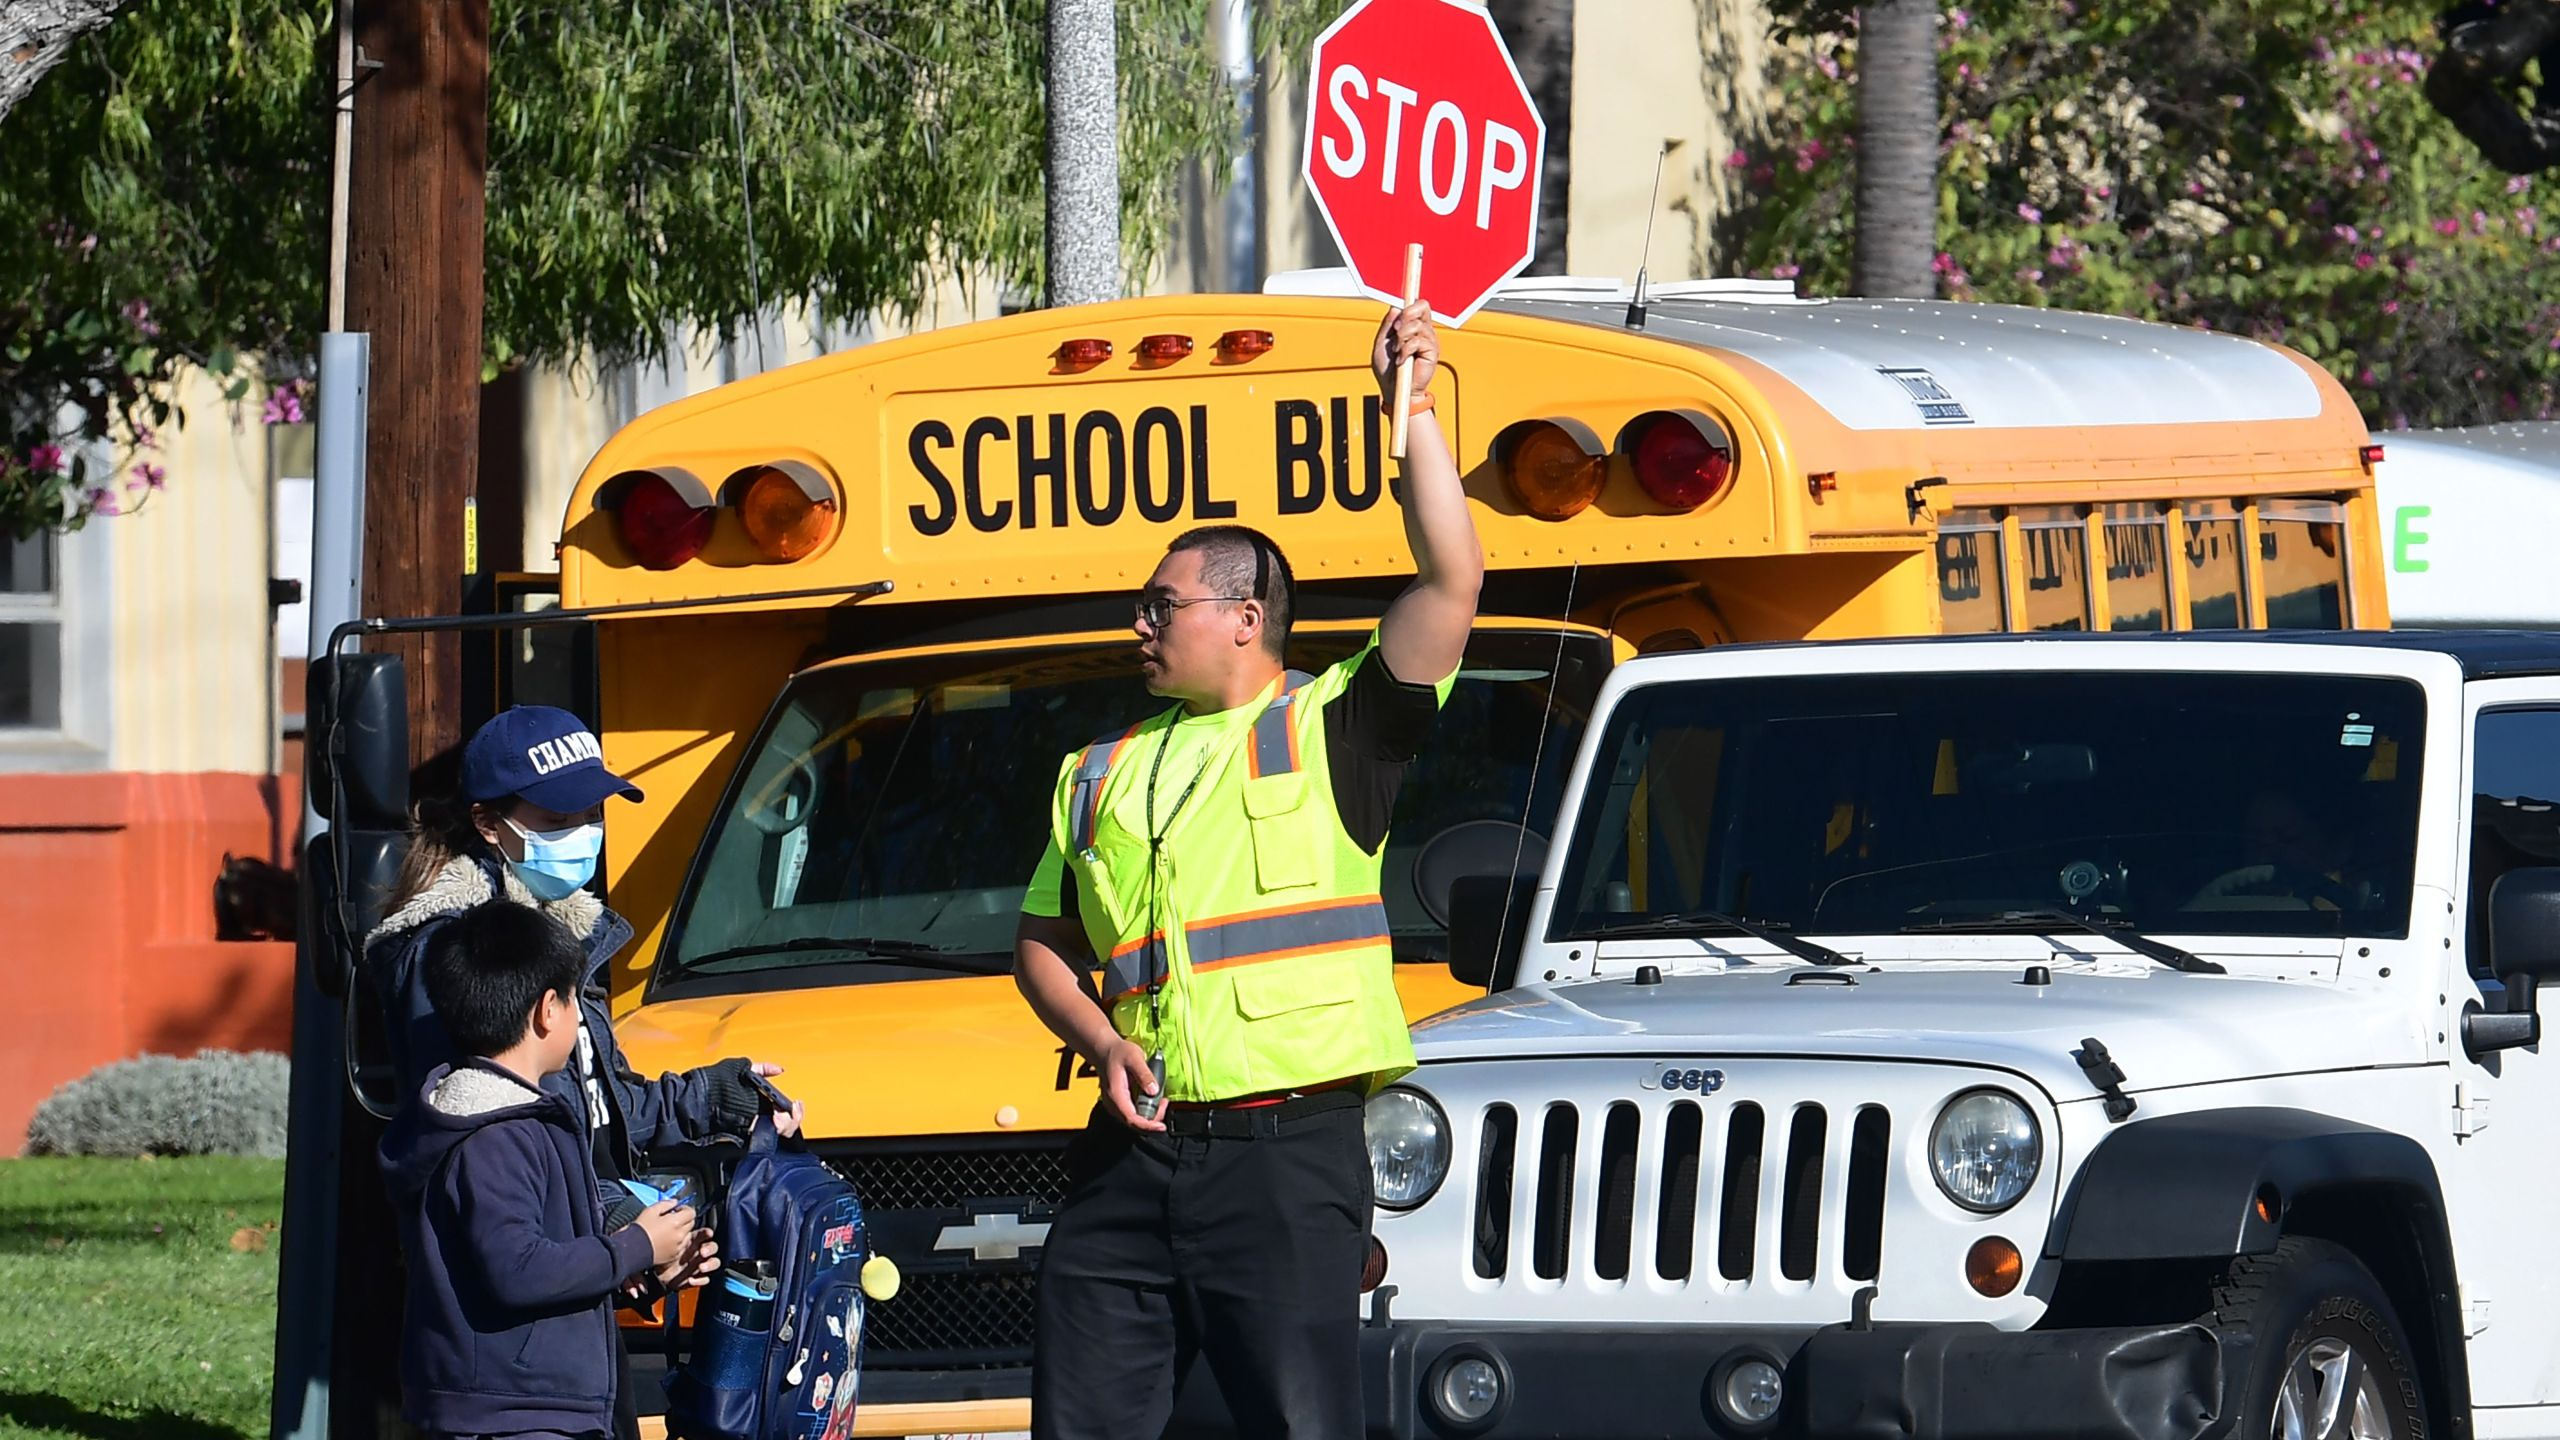 A woman wears a facemask picking up a child as an Alhambra Unified School District crossing guard stops traffic outside Ramona Elementary School on February 4, 2020 in Alhambra, California. (Photo by Frederic J. BROWN / AFP)